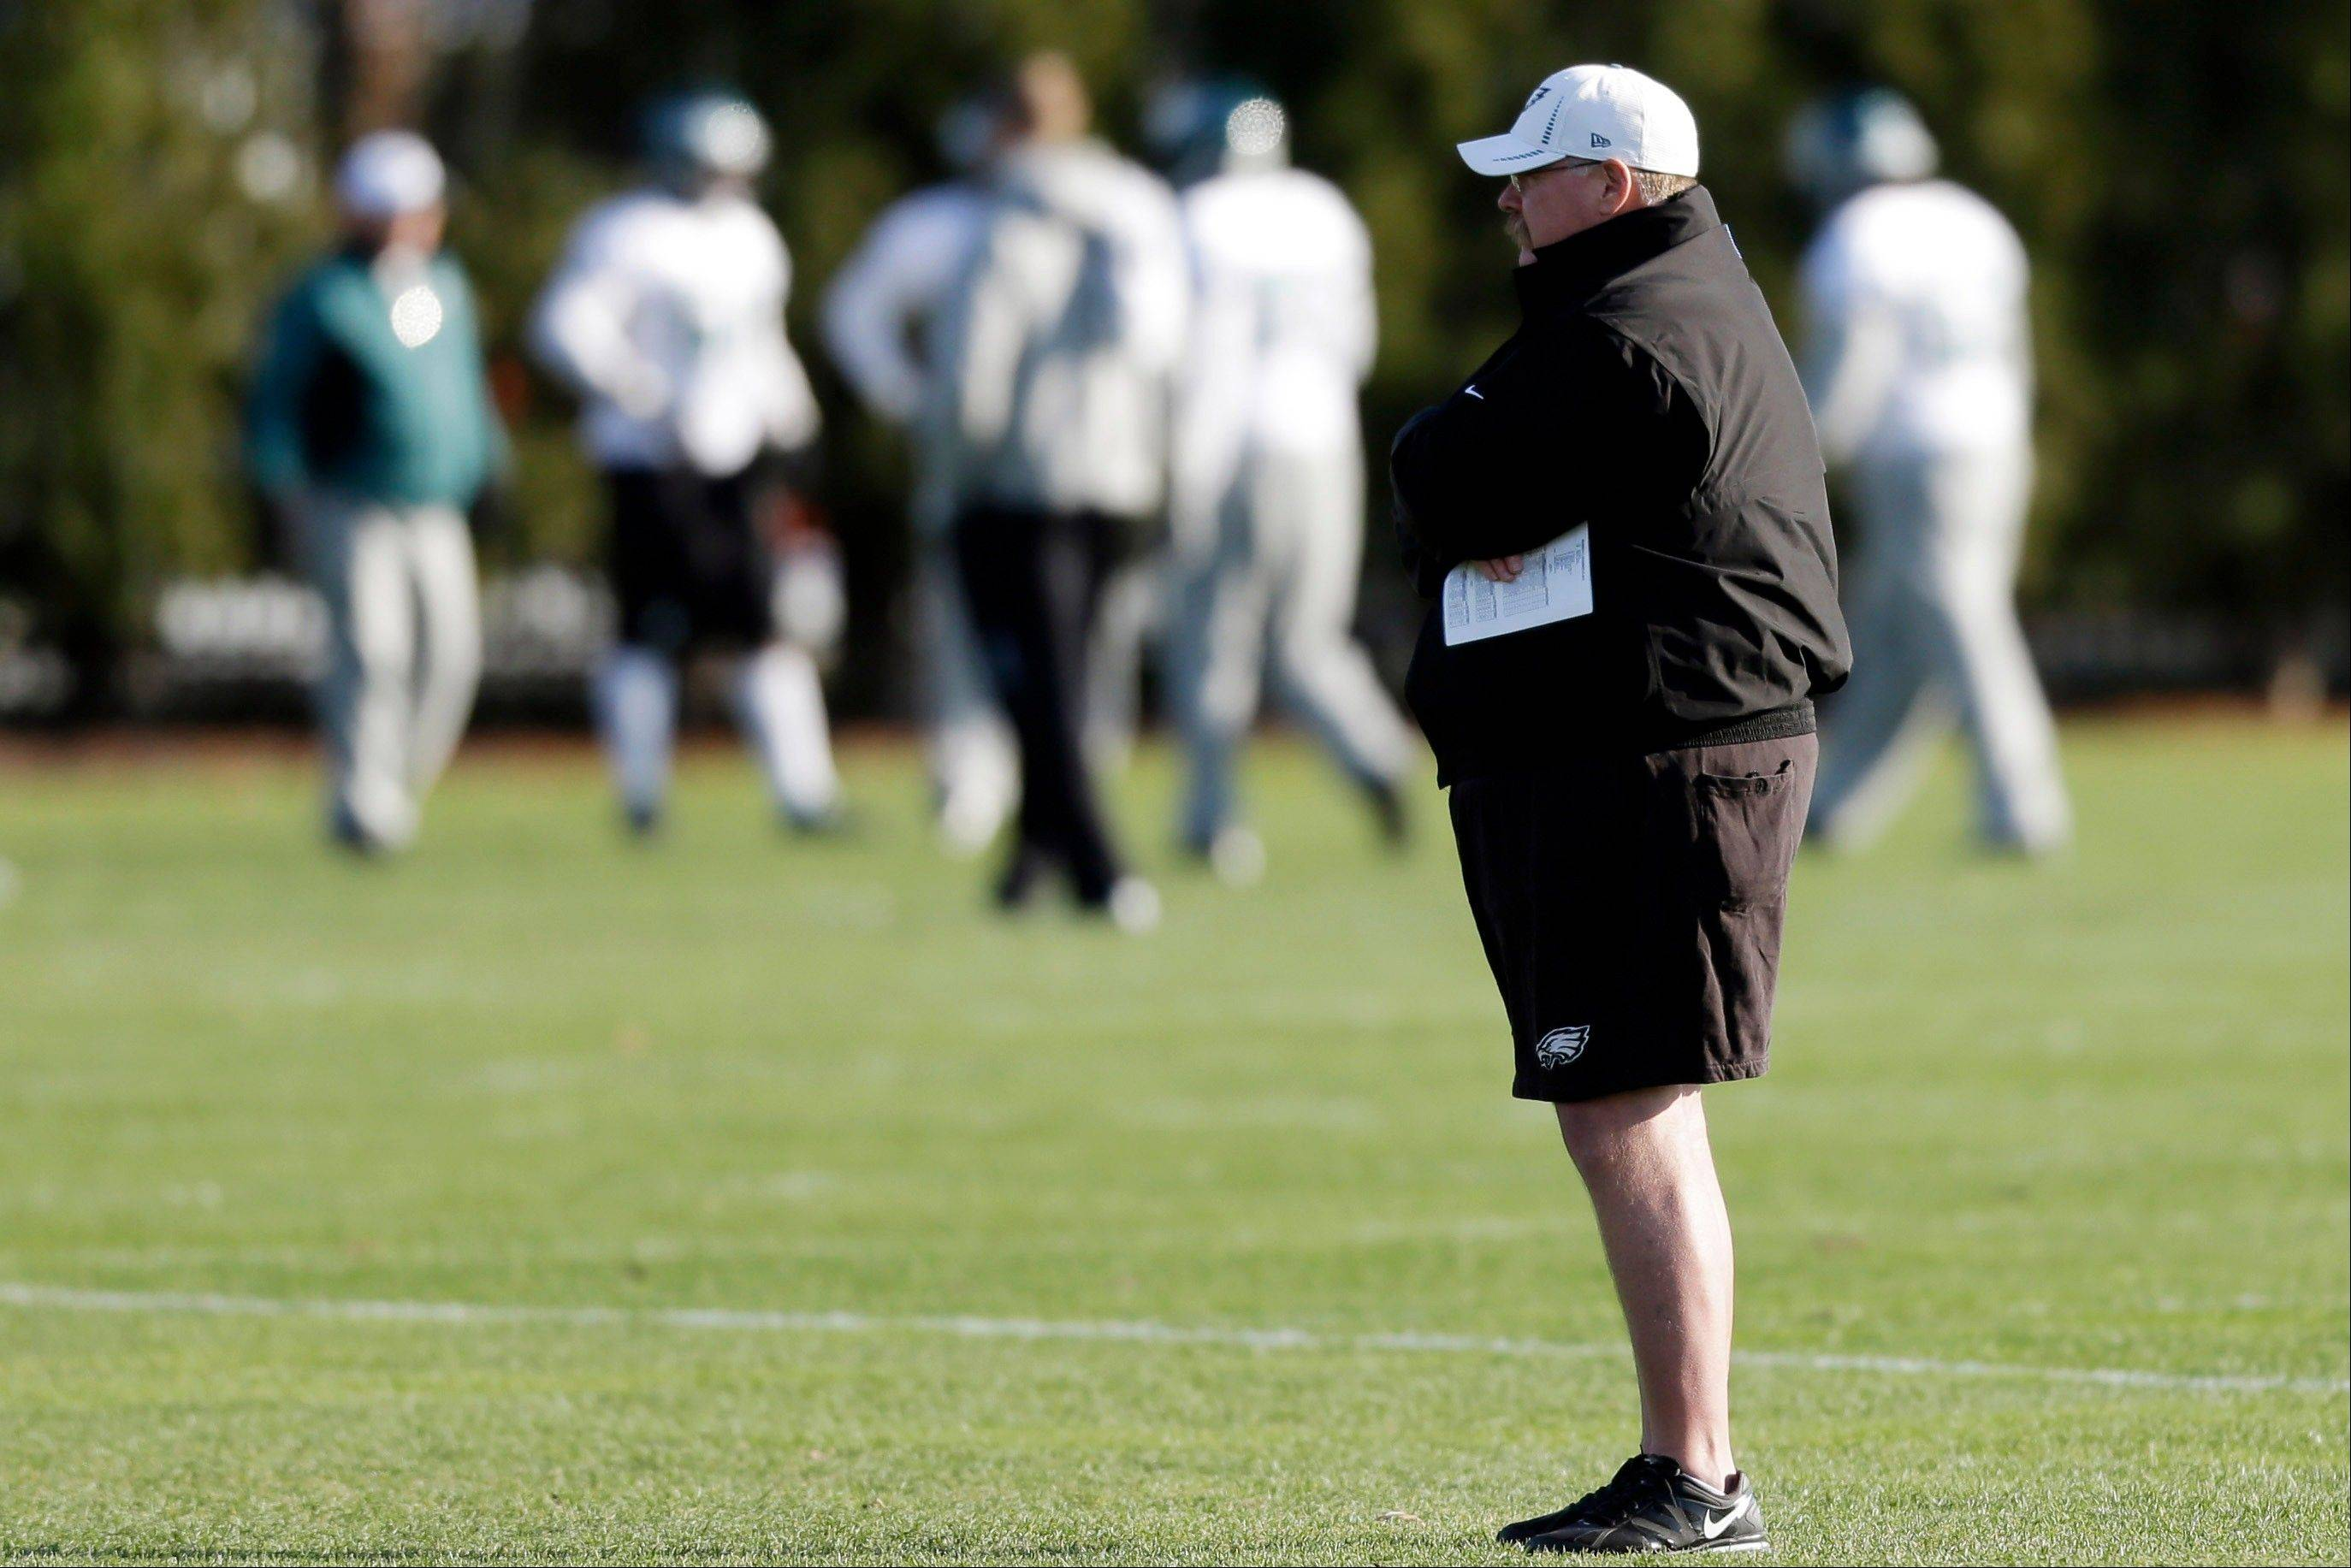 It has been a very tough year for Philadelphia Eagles coach Andy Reid and others in the sports world.